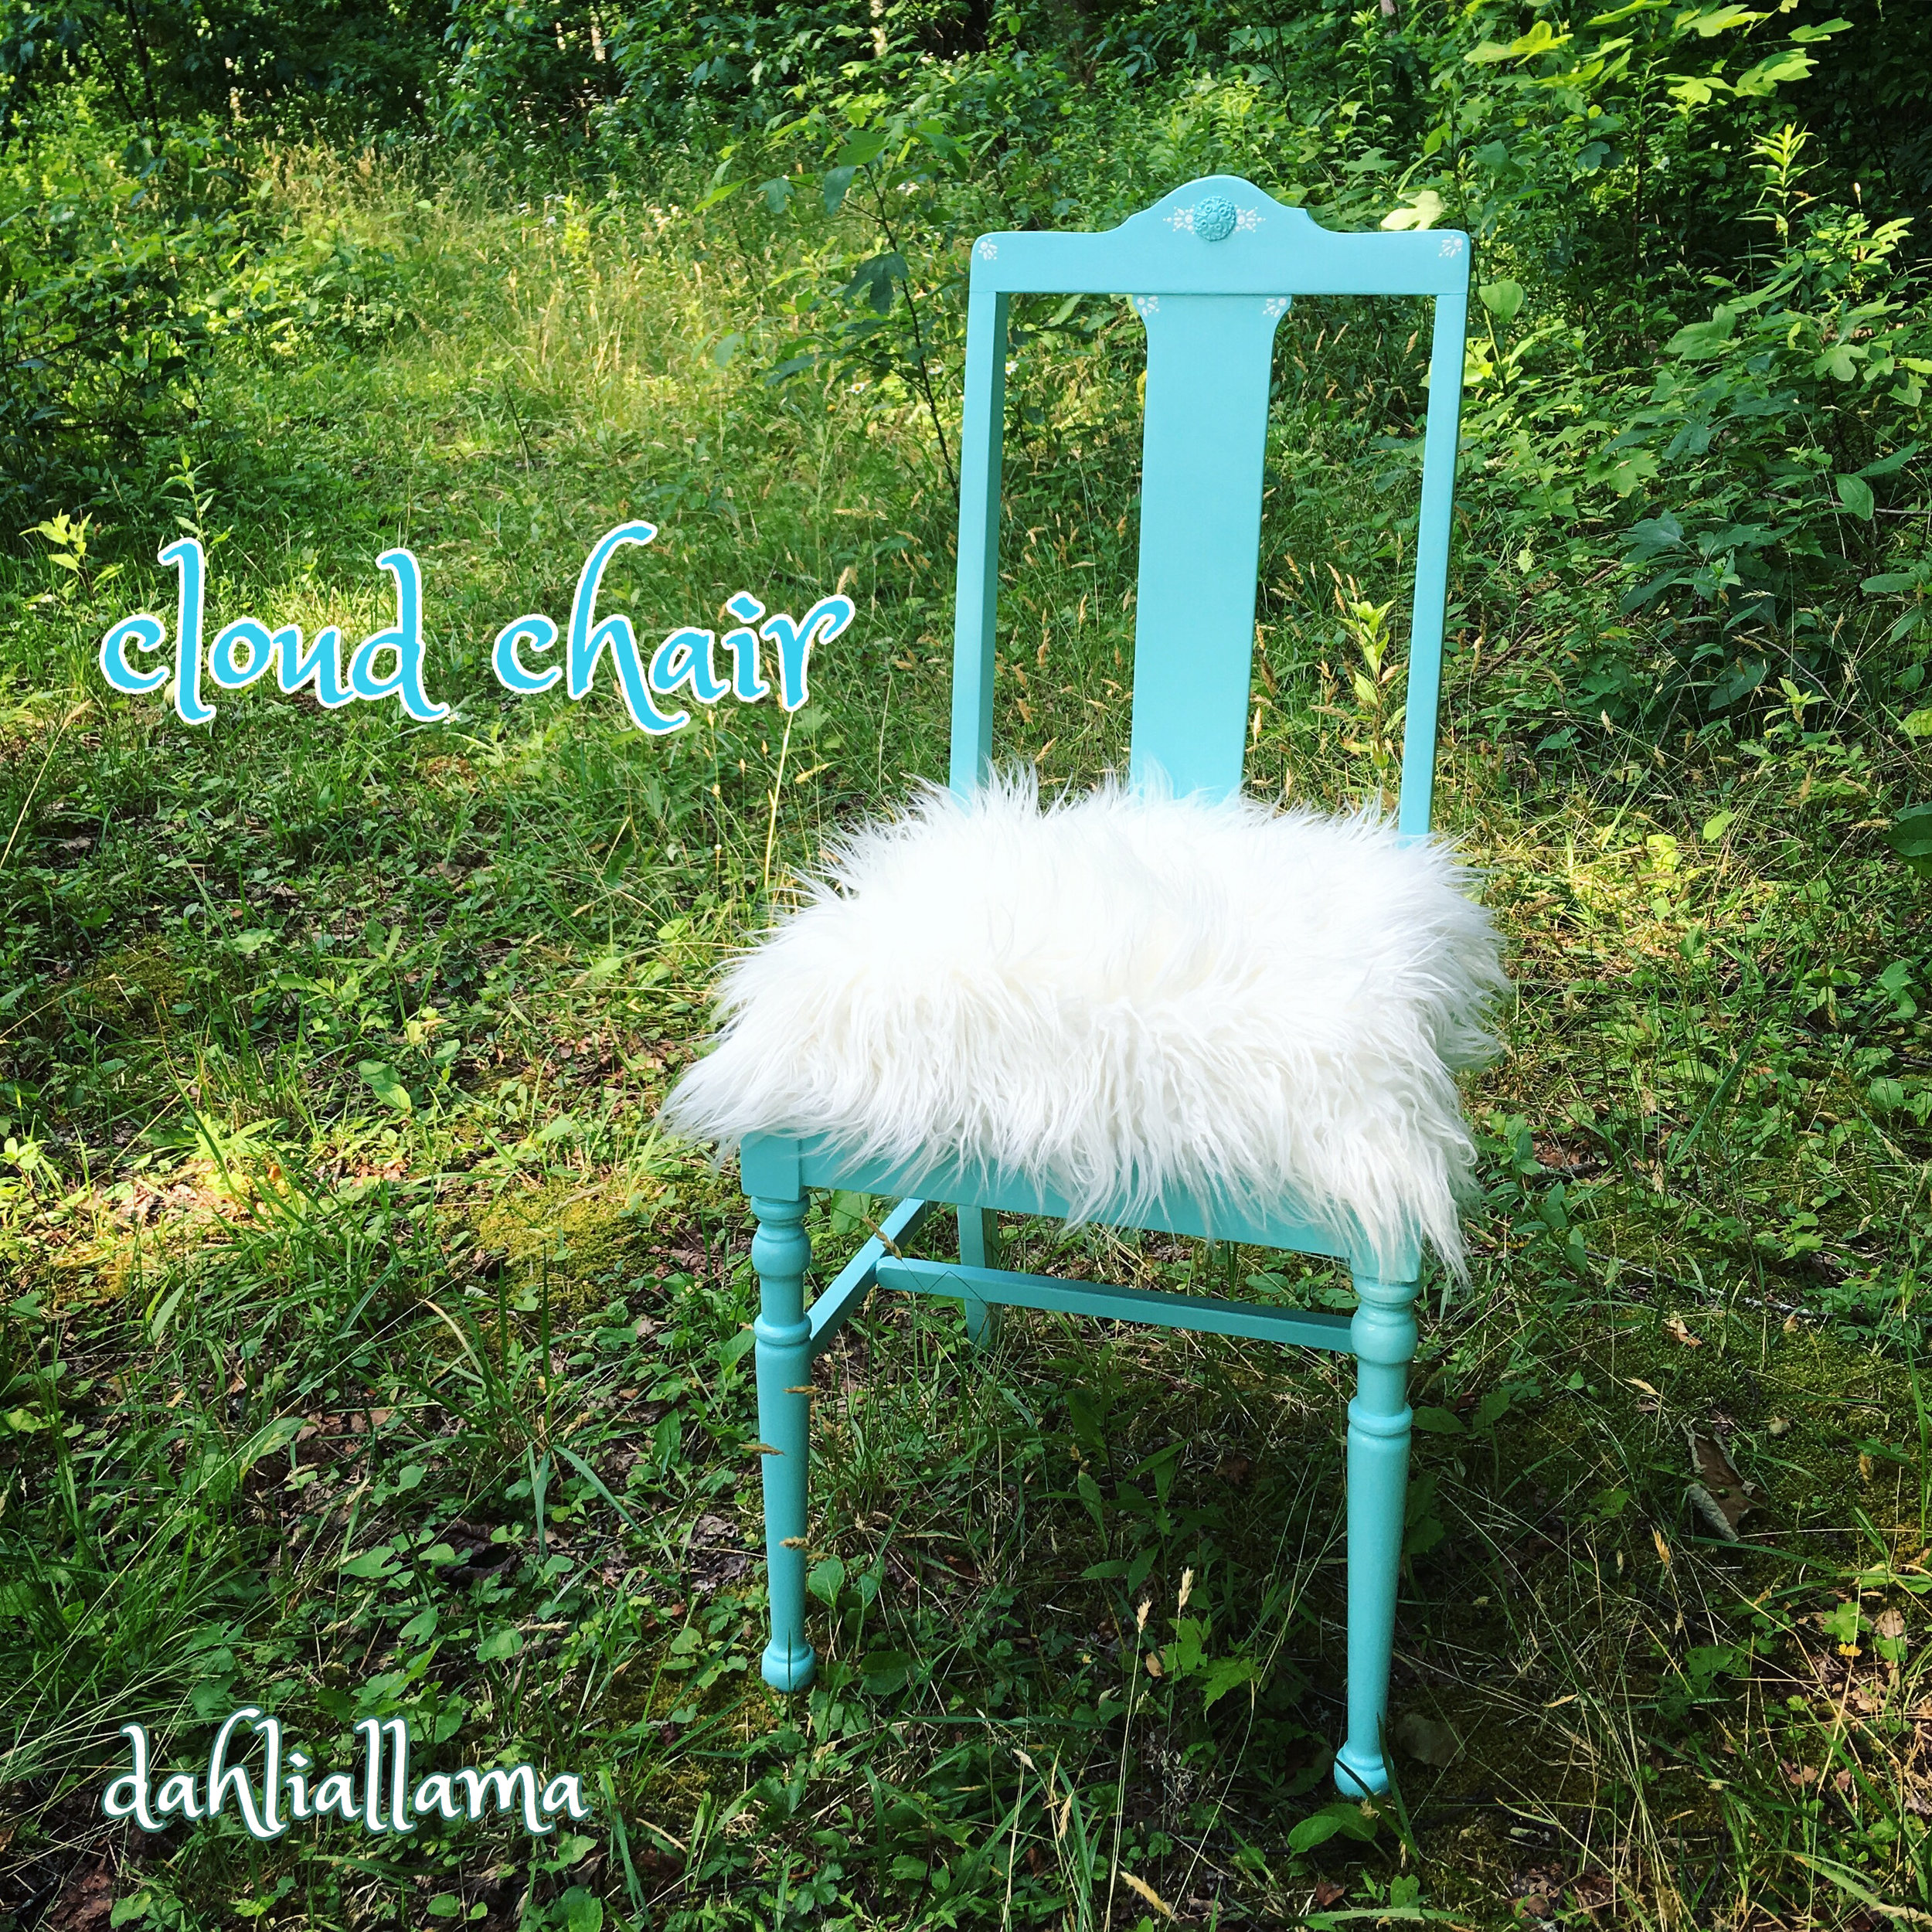 upcycled art show drayton mills spartanburg, sc june 2019   the 'cloud chair' krylon + acrylic + faux fur